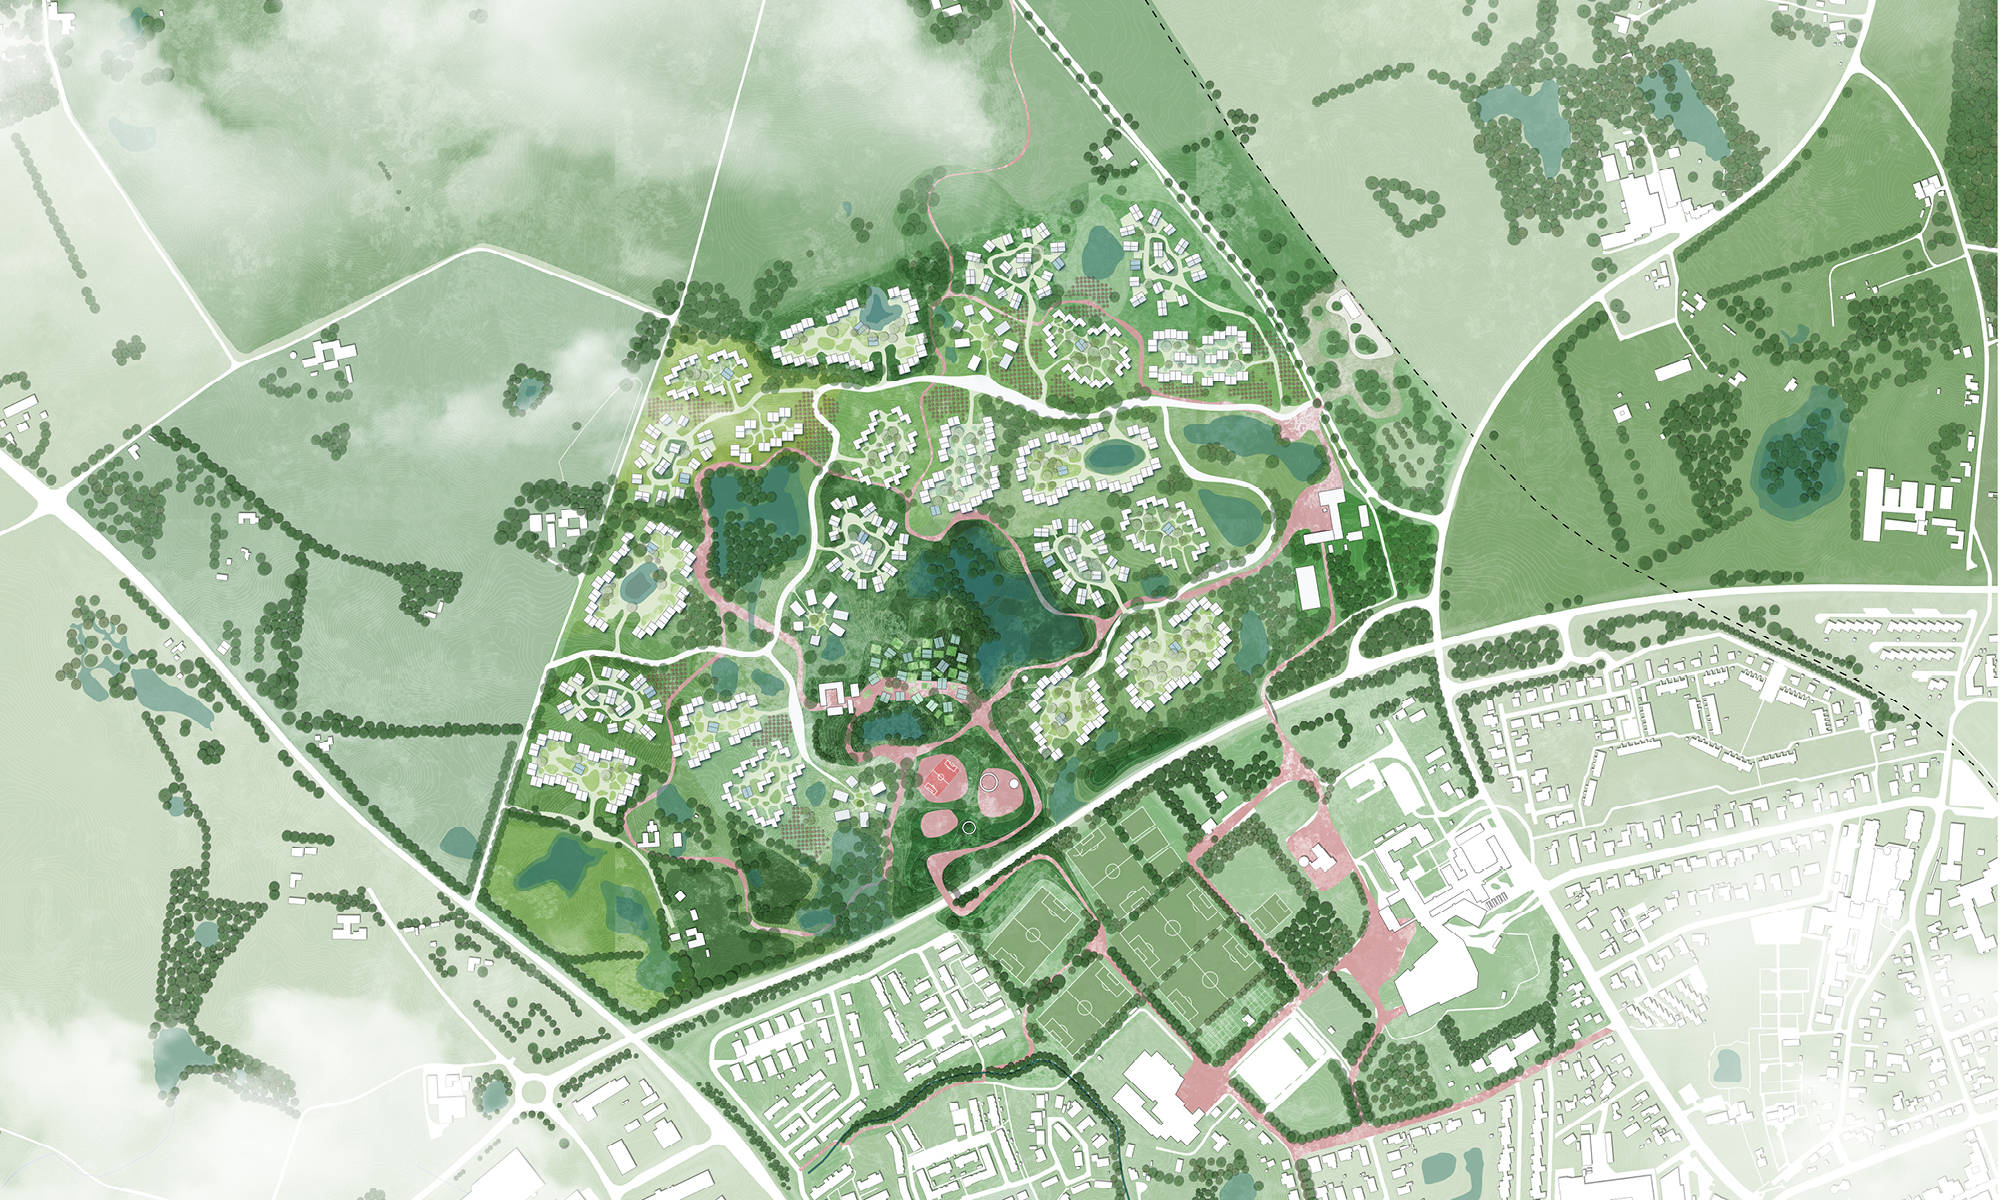 Helsinge Sharing Communities transforms the mono-cultural industrial farmland into the future home of 700 families,restoring biodiversity and providing a multiplicity of new activities.